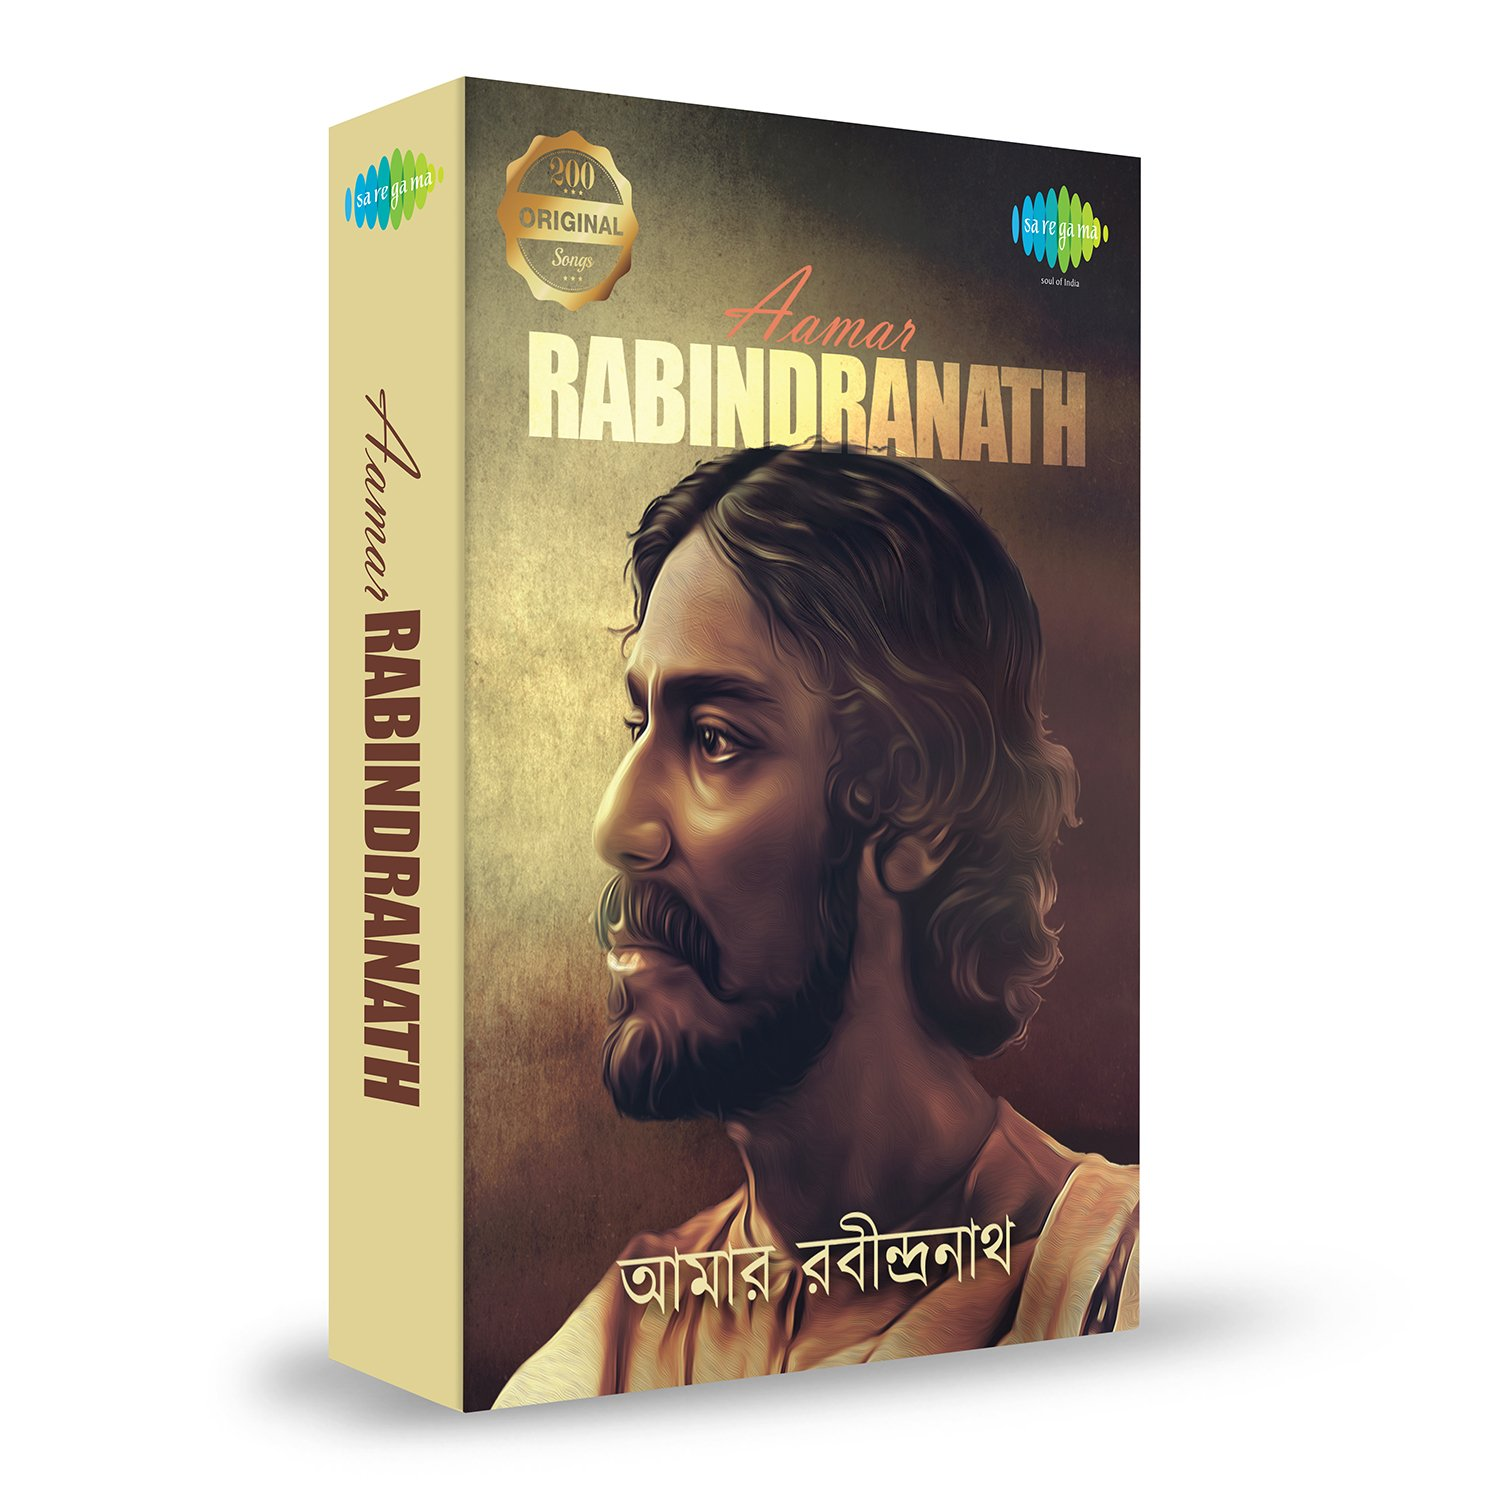 Amazon com: Music Card: Aamar Rabindranath 320 Kbps Mp3 Audio